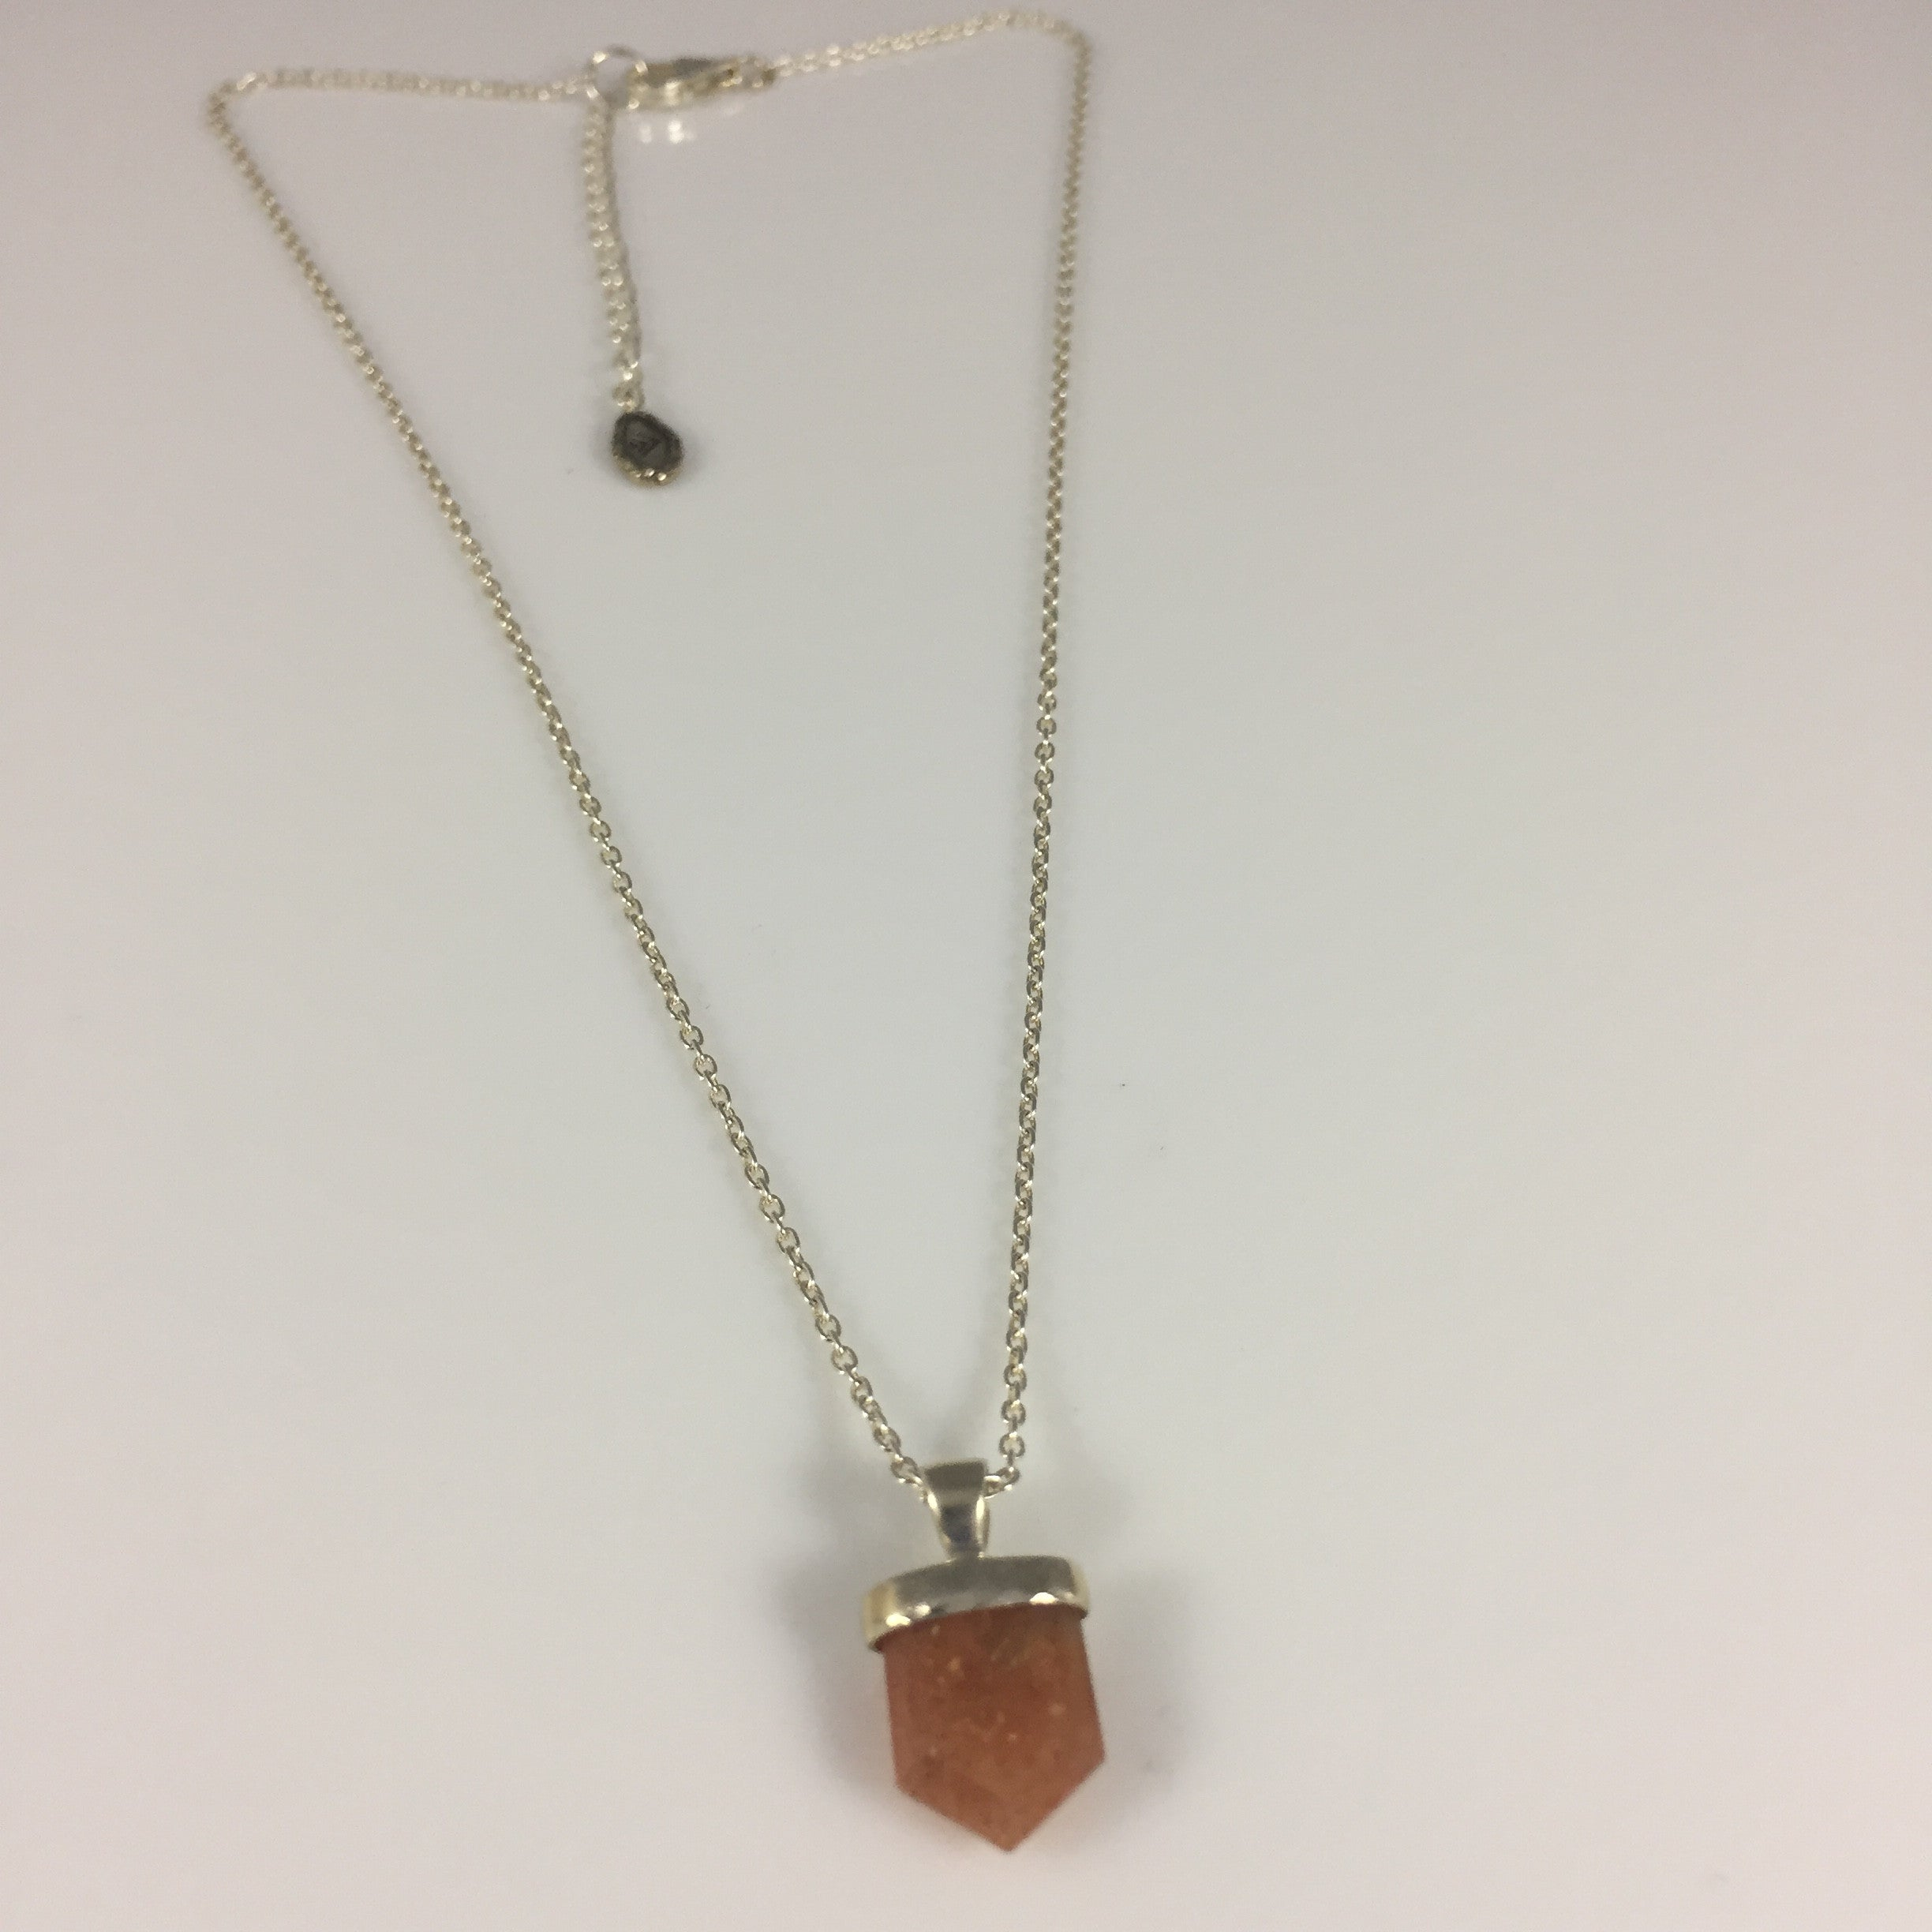 jewelry store product handmade that gemstone filled pendant sunstone necklace goldfilled stone length collarbone sunshine gold